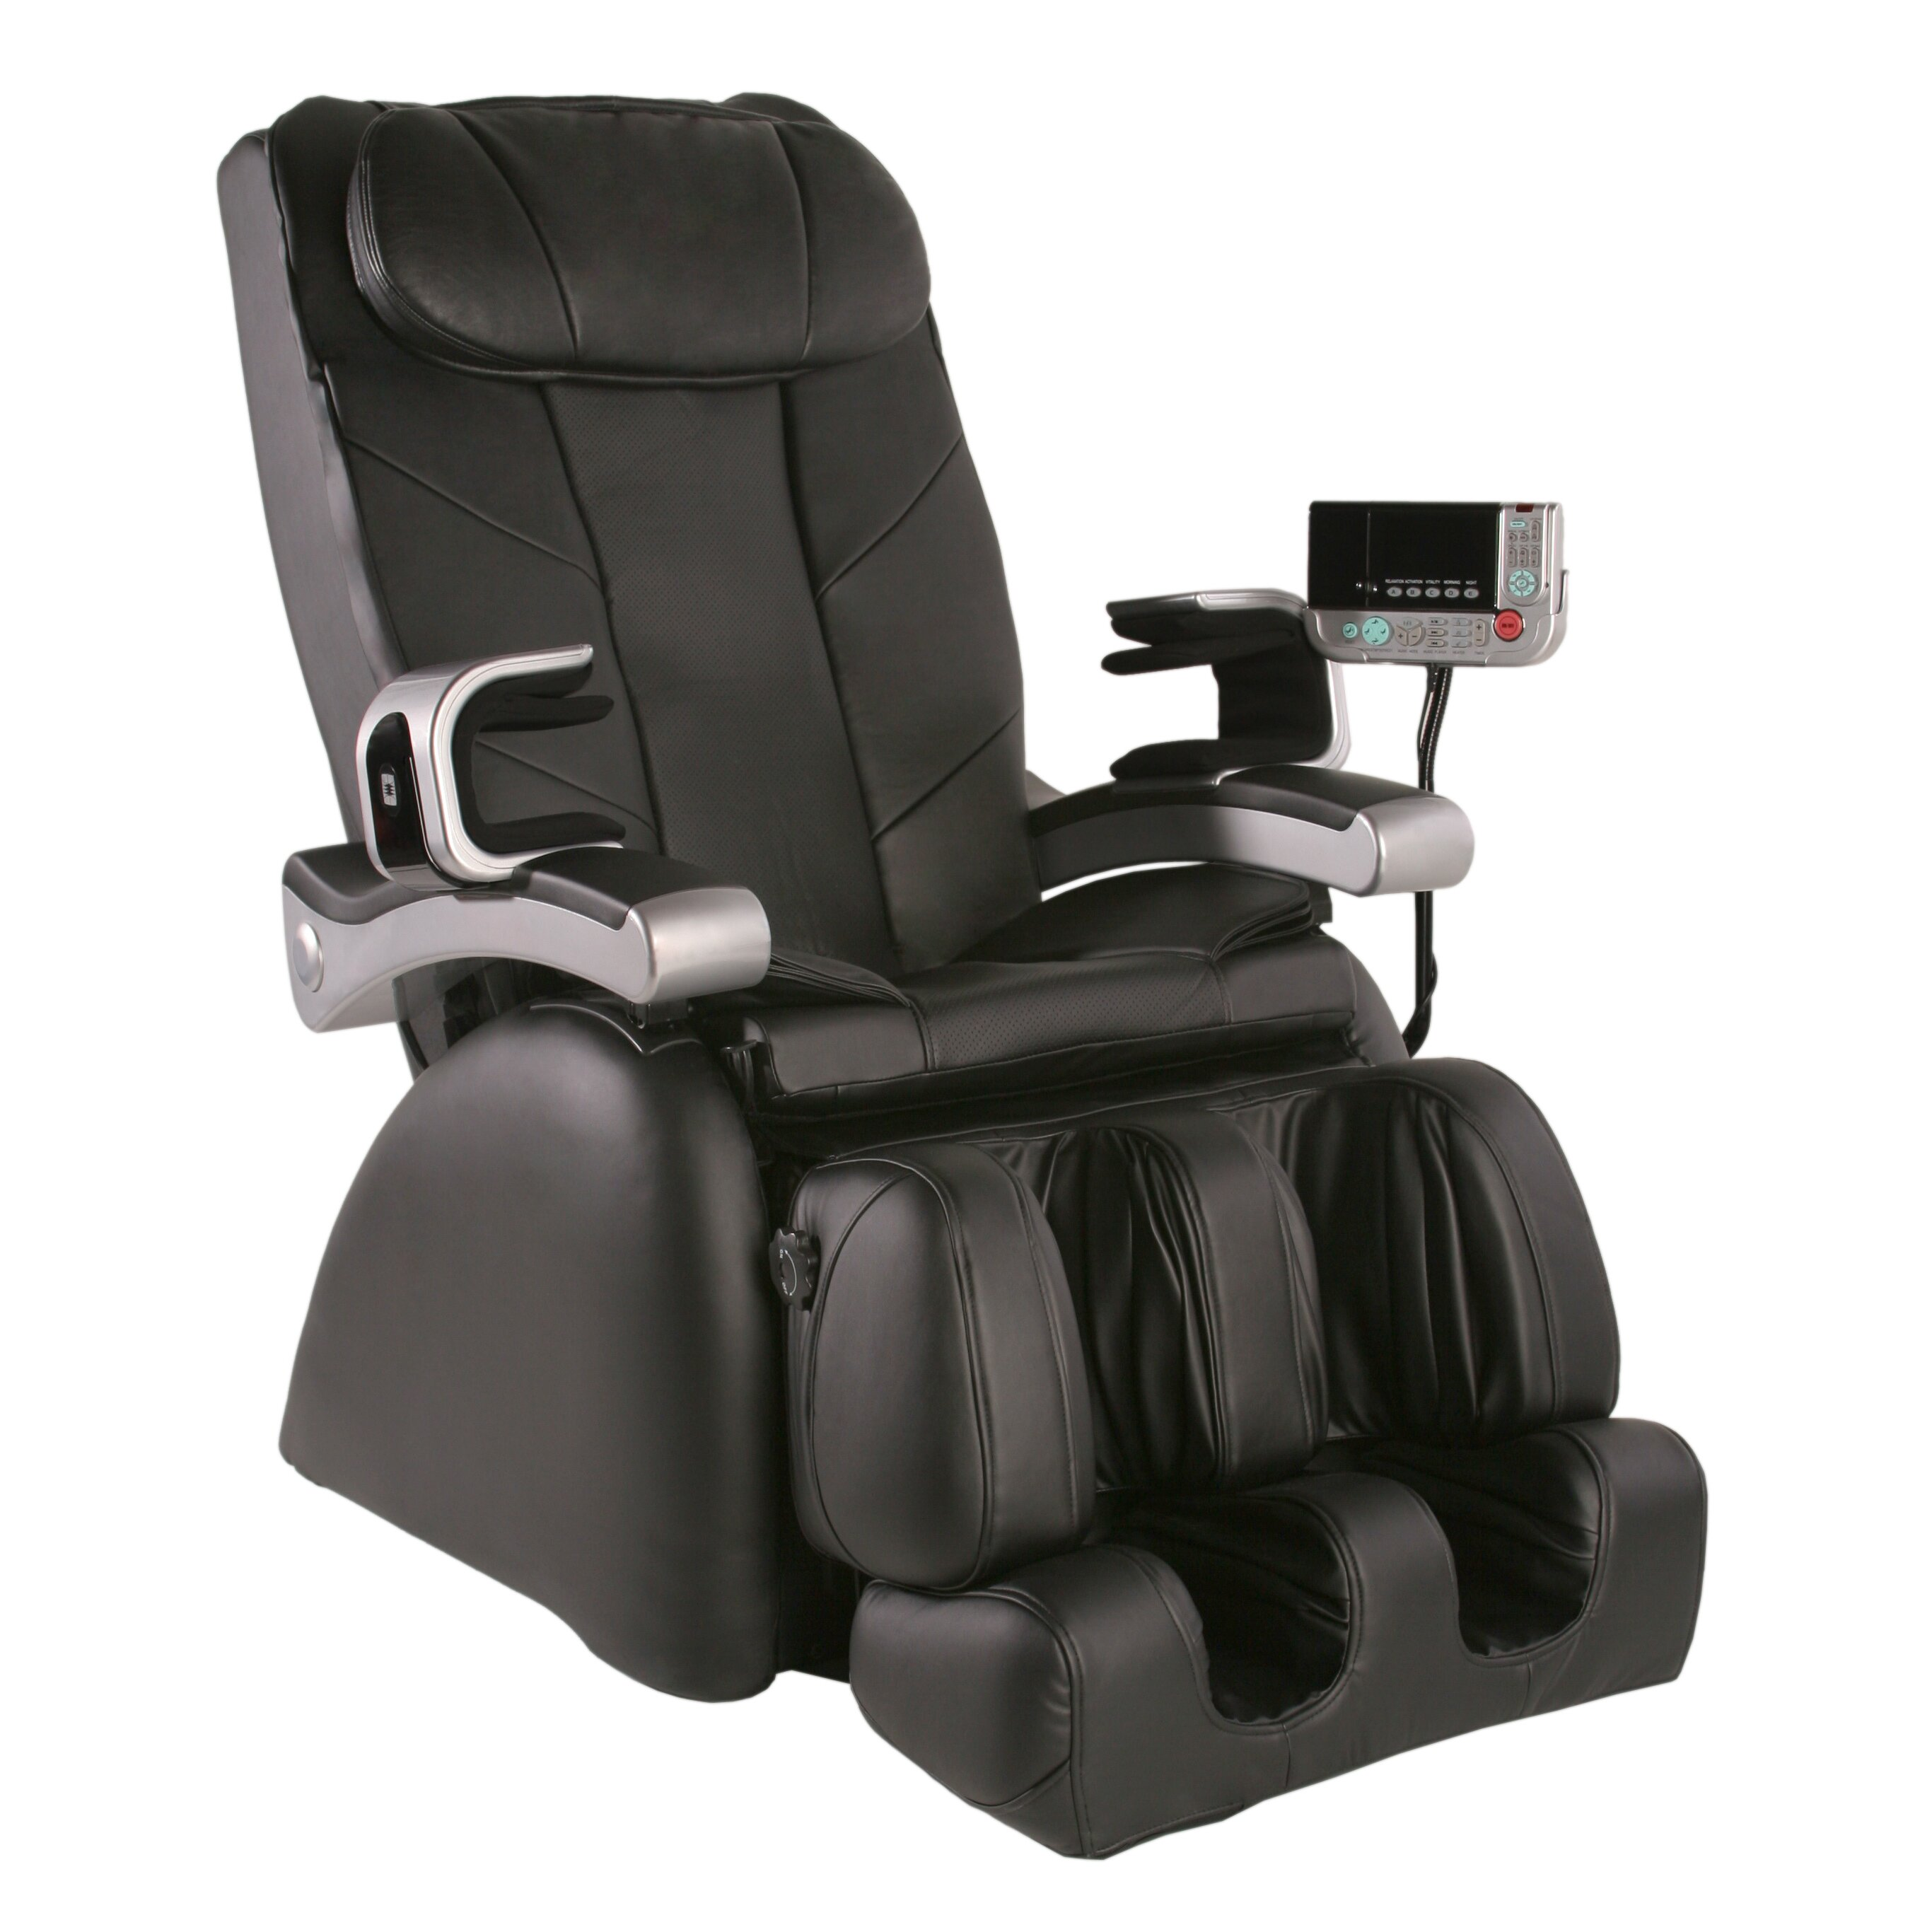 Lounge chairs for bad backs - Mp 1 Montage Premier Reclining Heated Massage Chair